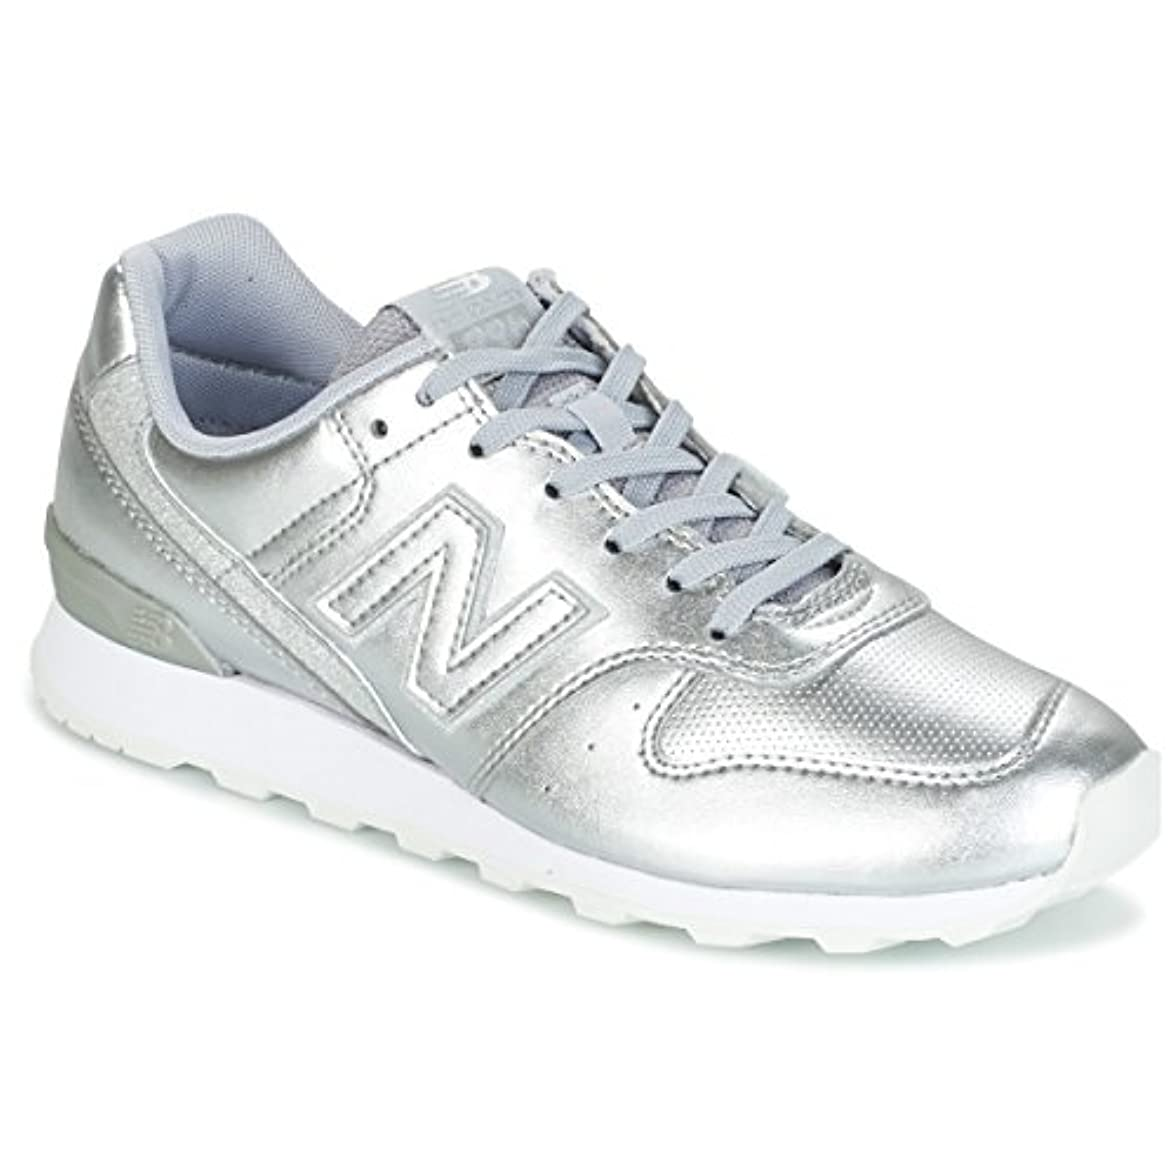 New Balance Wr996 Sneakers Donne Argento Basse